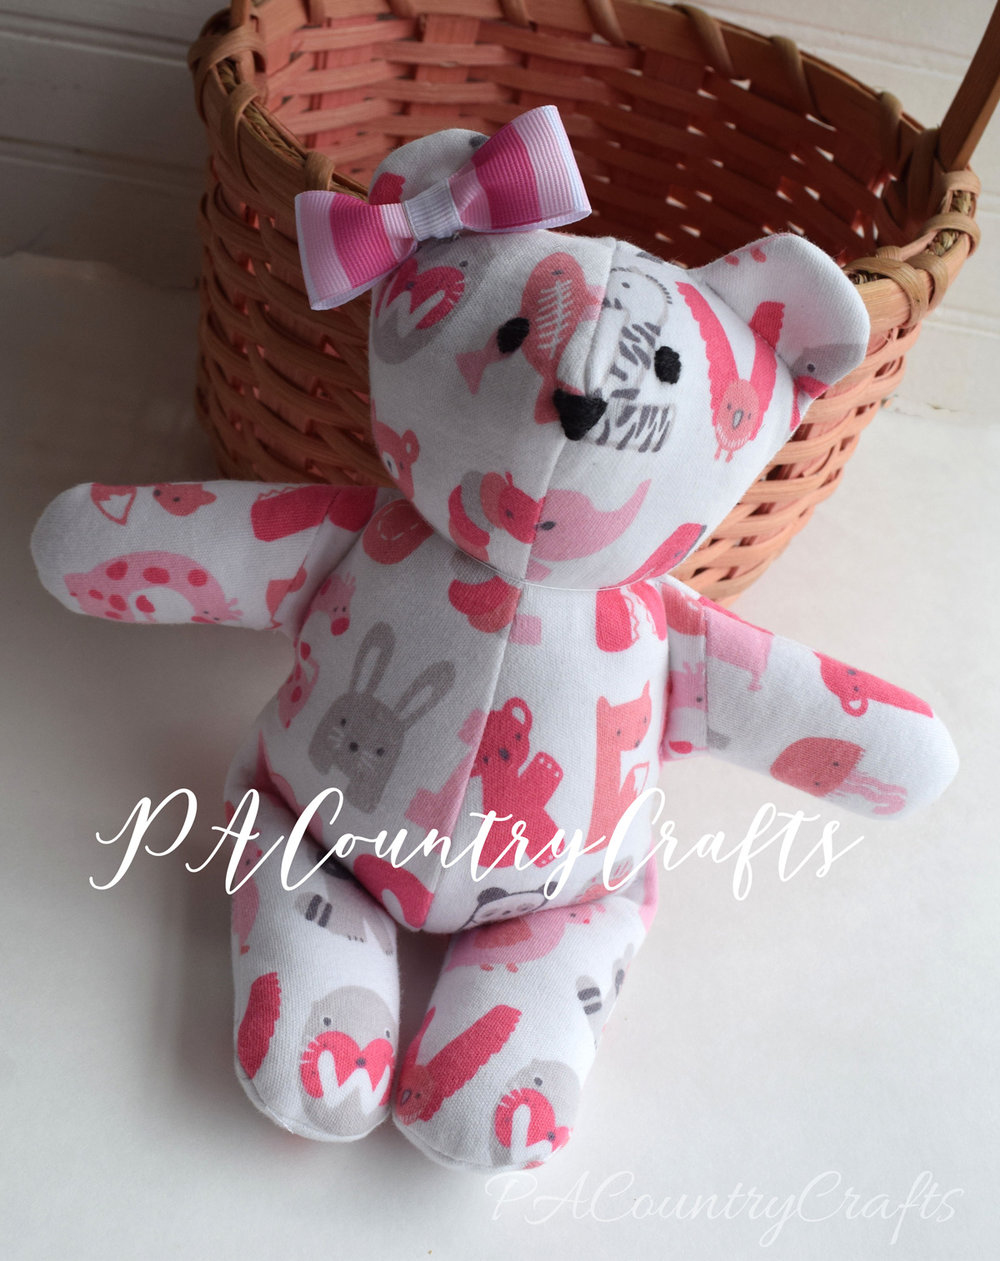 Use old baby sleeper to make a memory bear